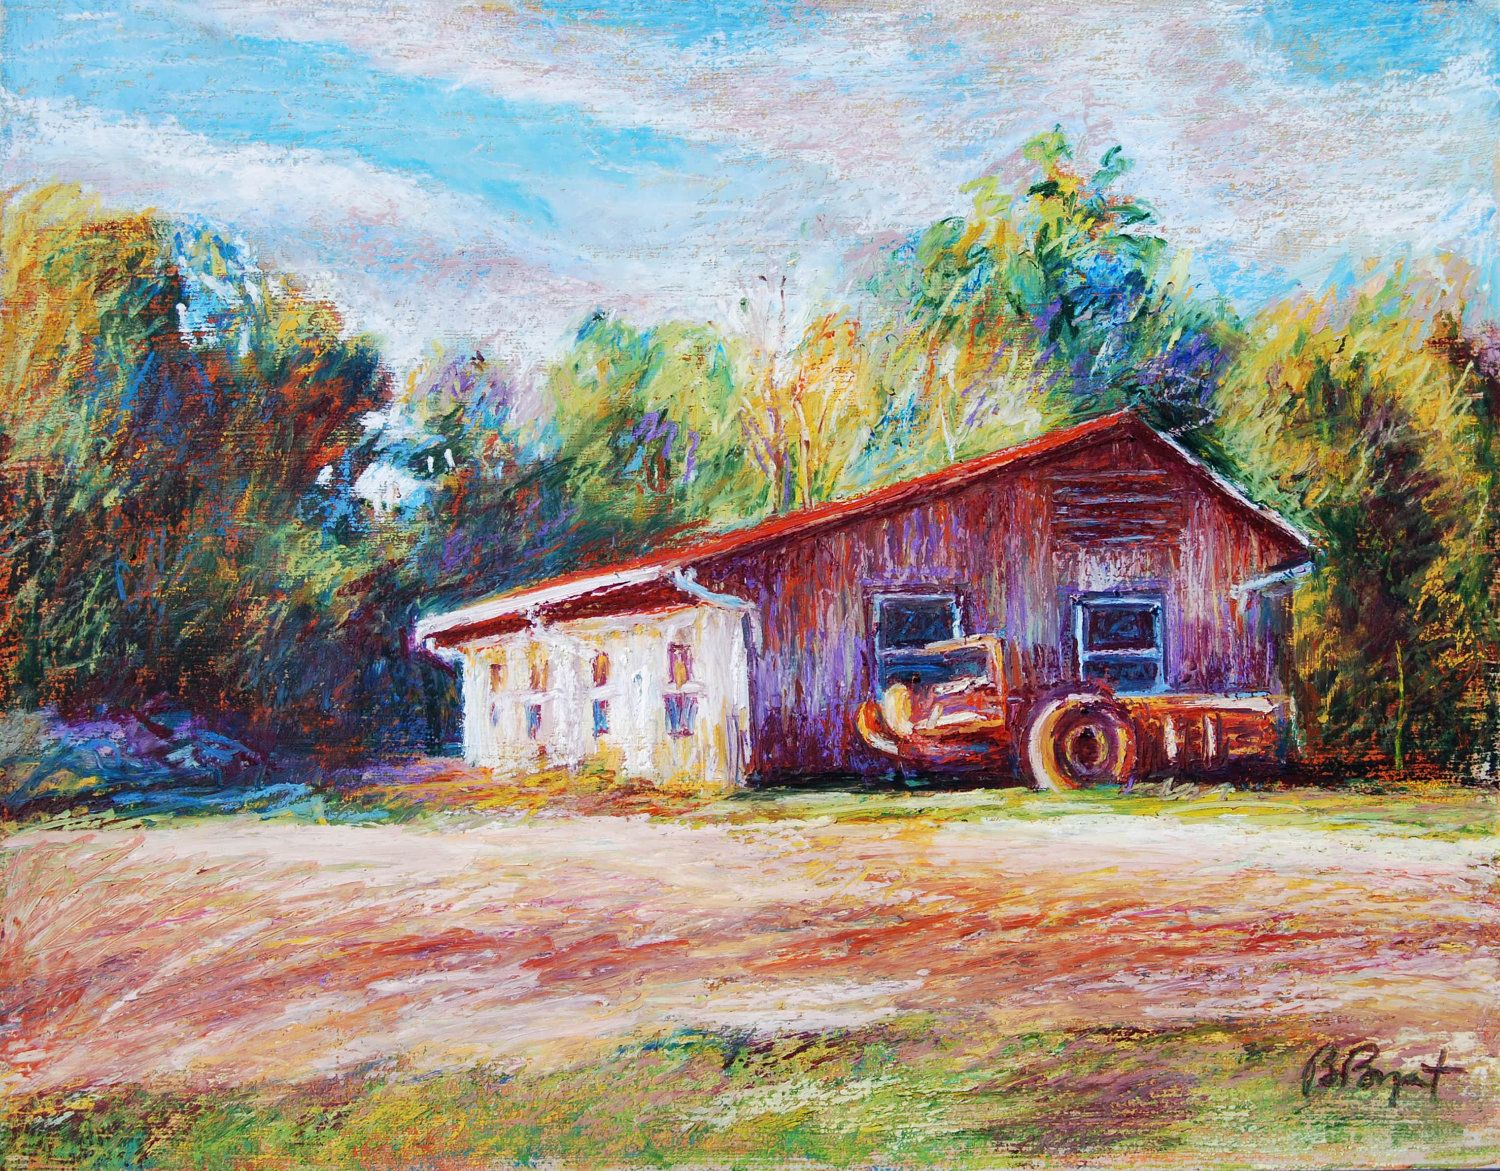 Oil Pastel Paintings Barn Landscape Painting 11 X 14 Original Oil Pastel Painting Chapel Oil Pastel Paintings Oil Pastel Landscape Paintings